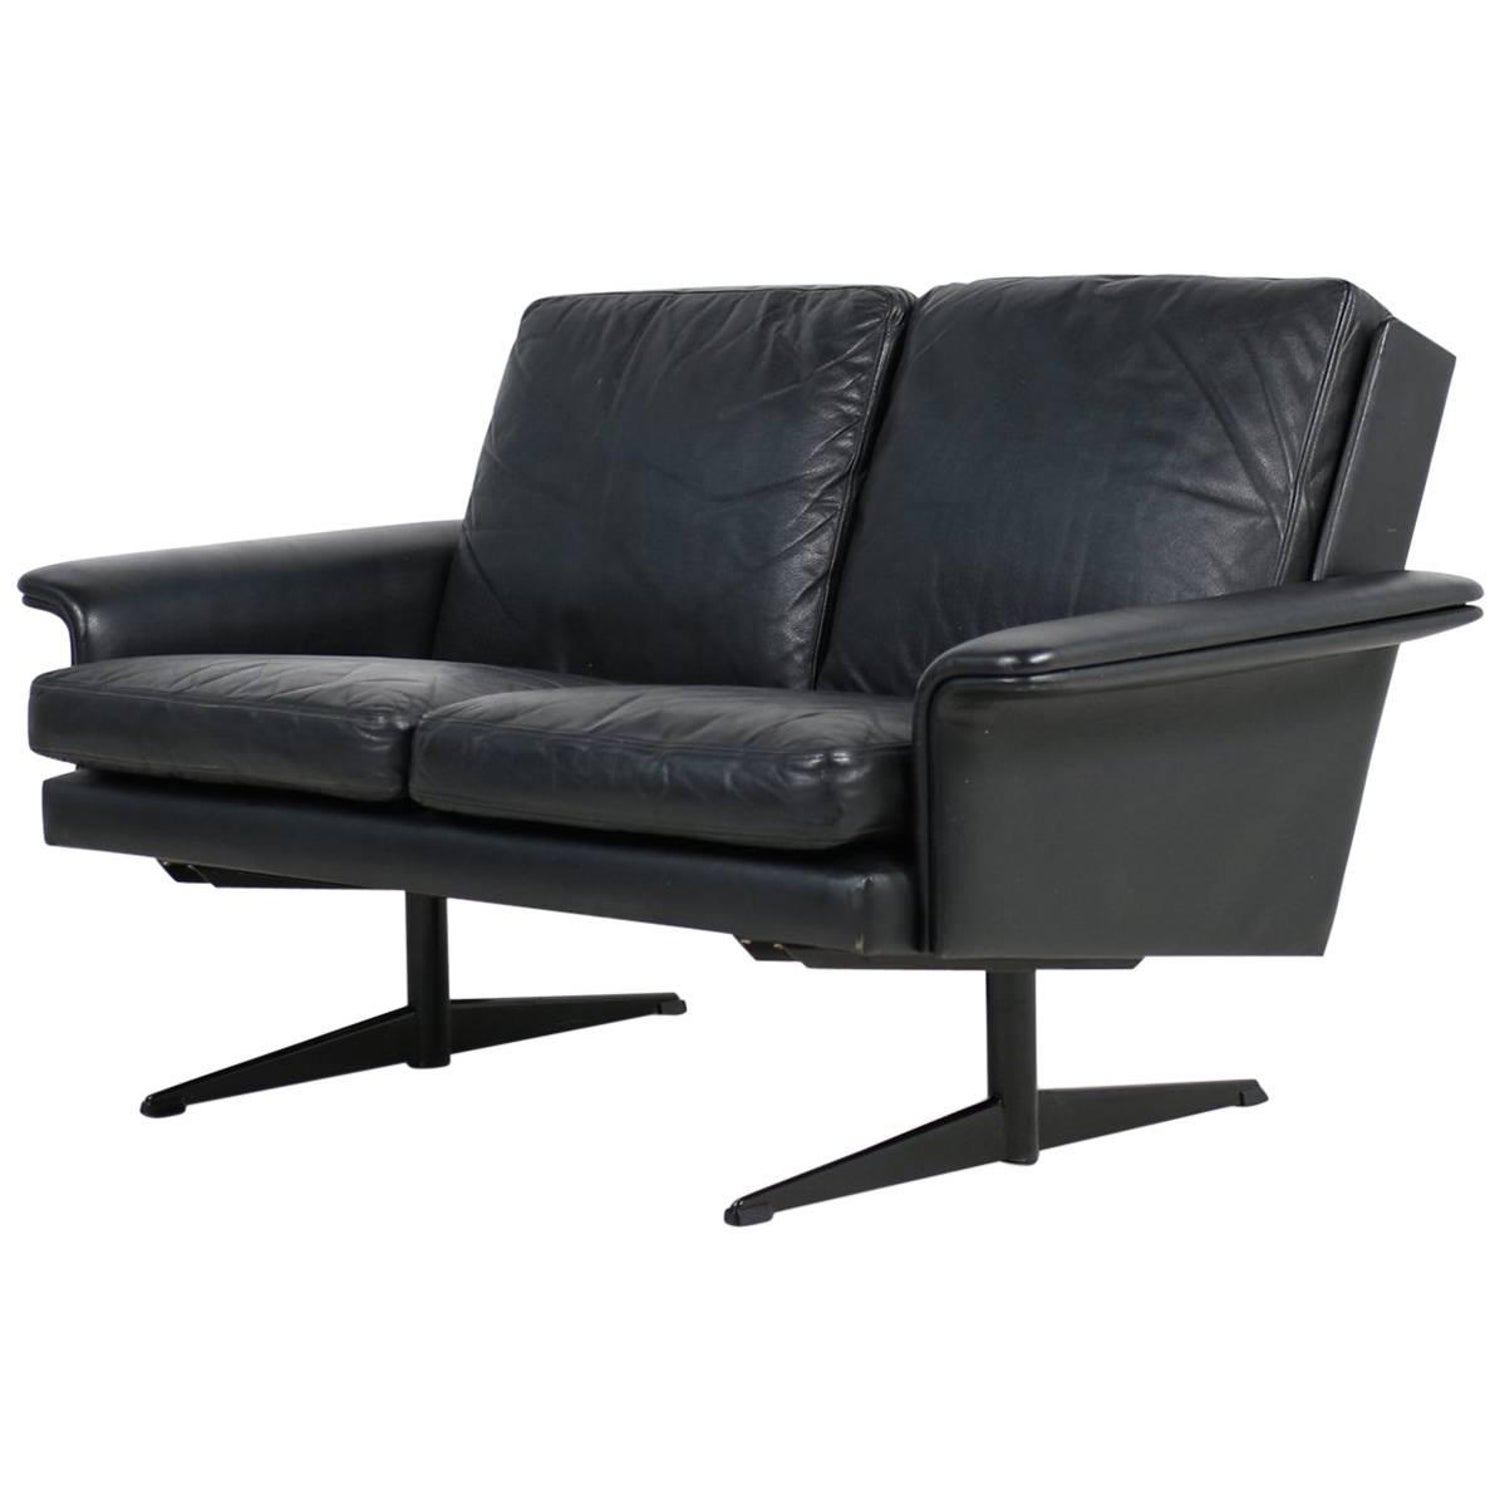 1960s danish modern leather sofa by h w klein for bramin two seat steel legs for sale at 1stdibs